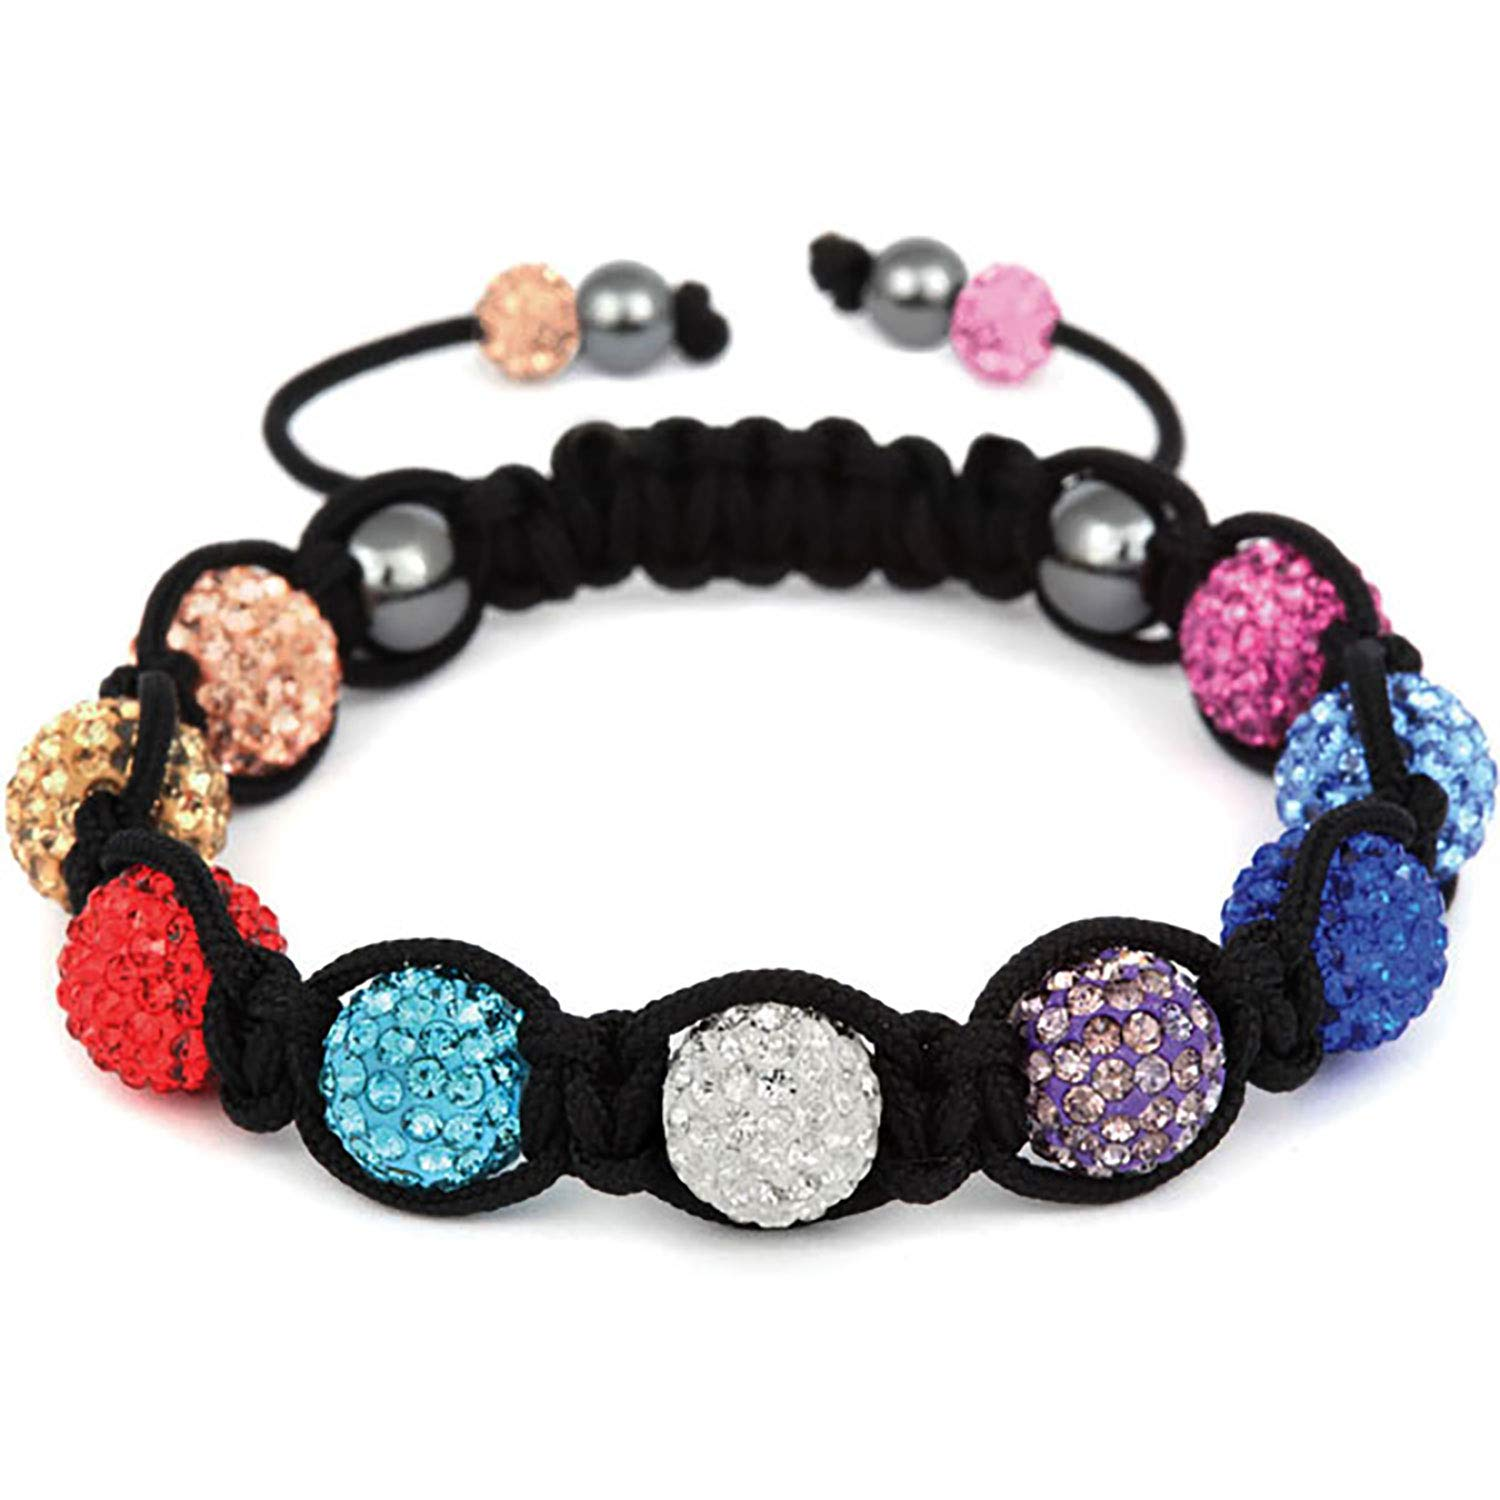 BodyJ4You Disco Balls Bracelet 9 Rainbow Beads Pave Crystals Adjustable Wrist Iced Out Jewelry